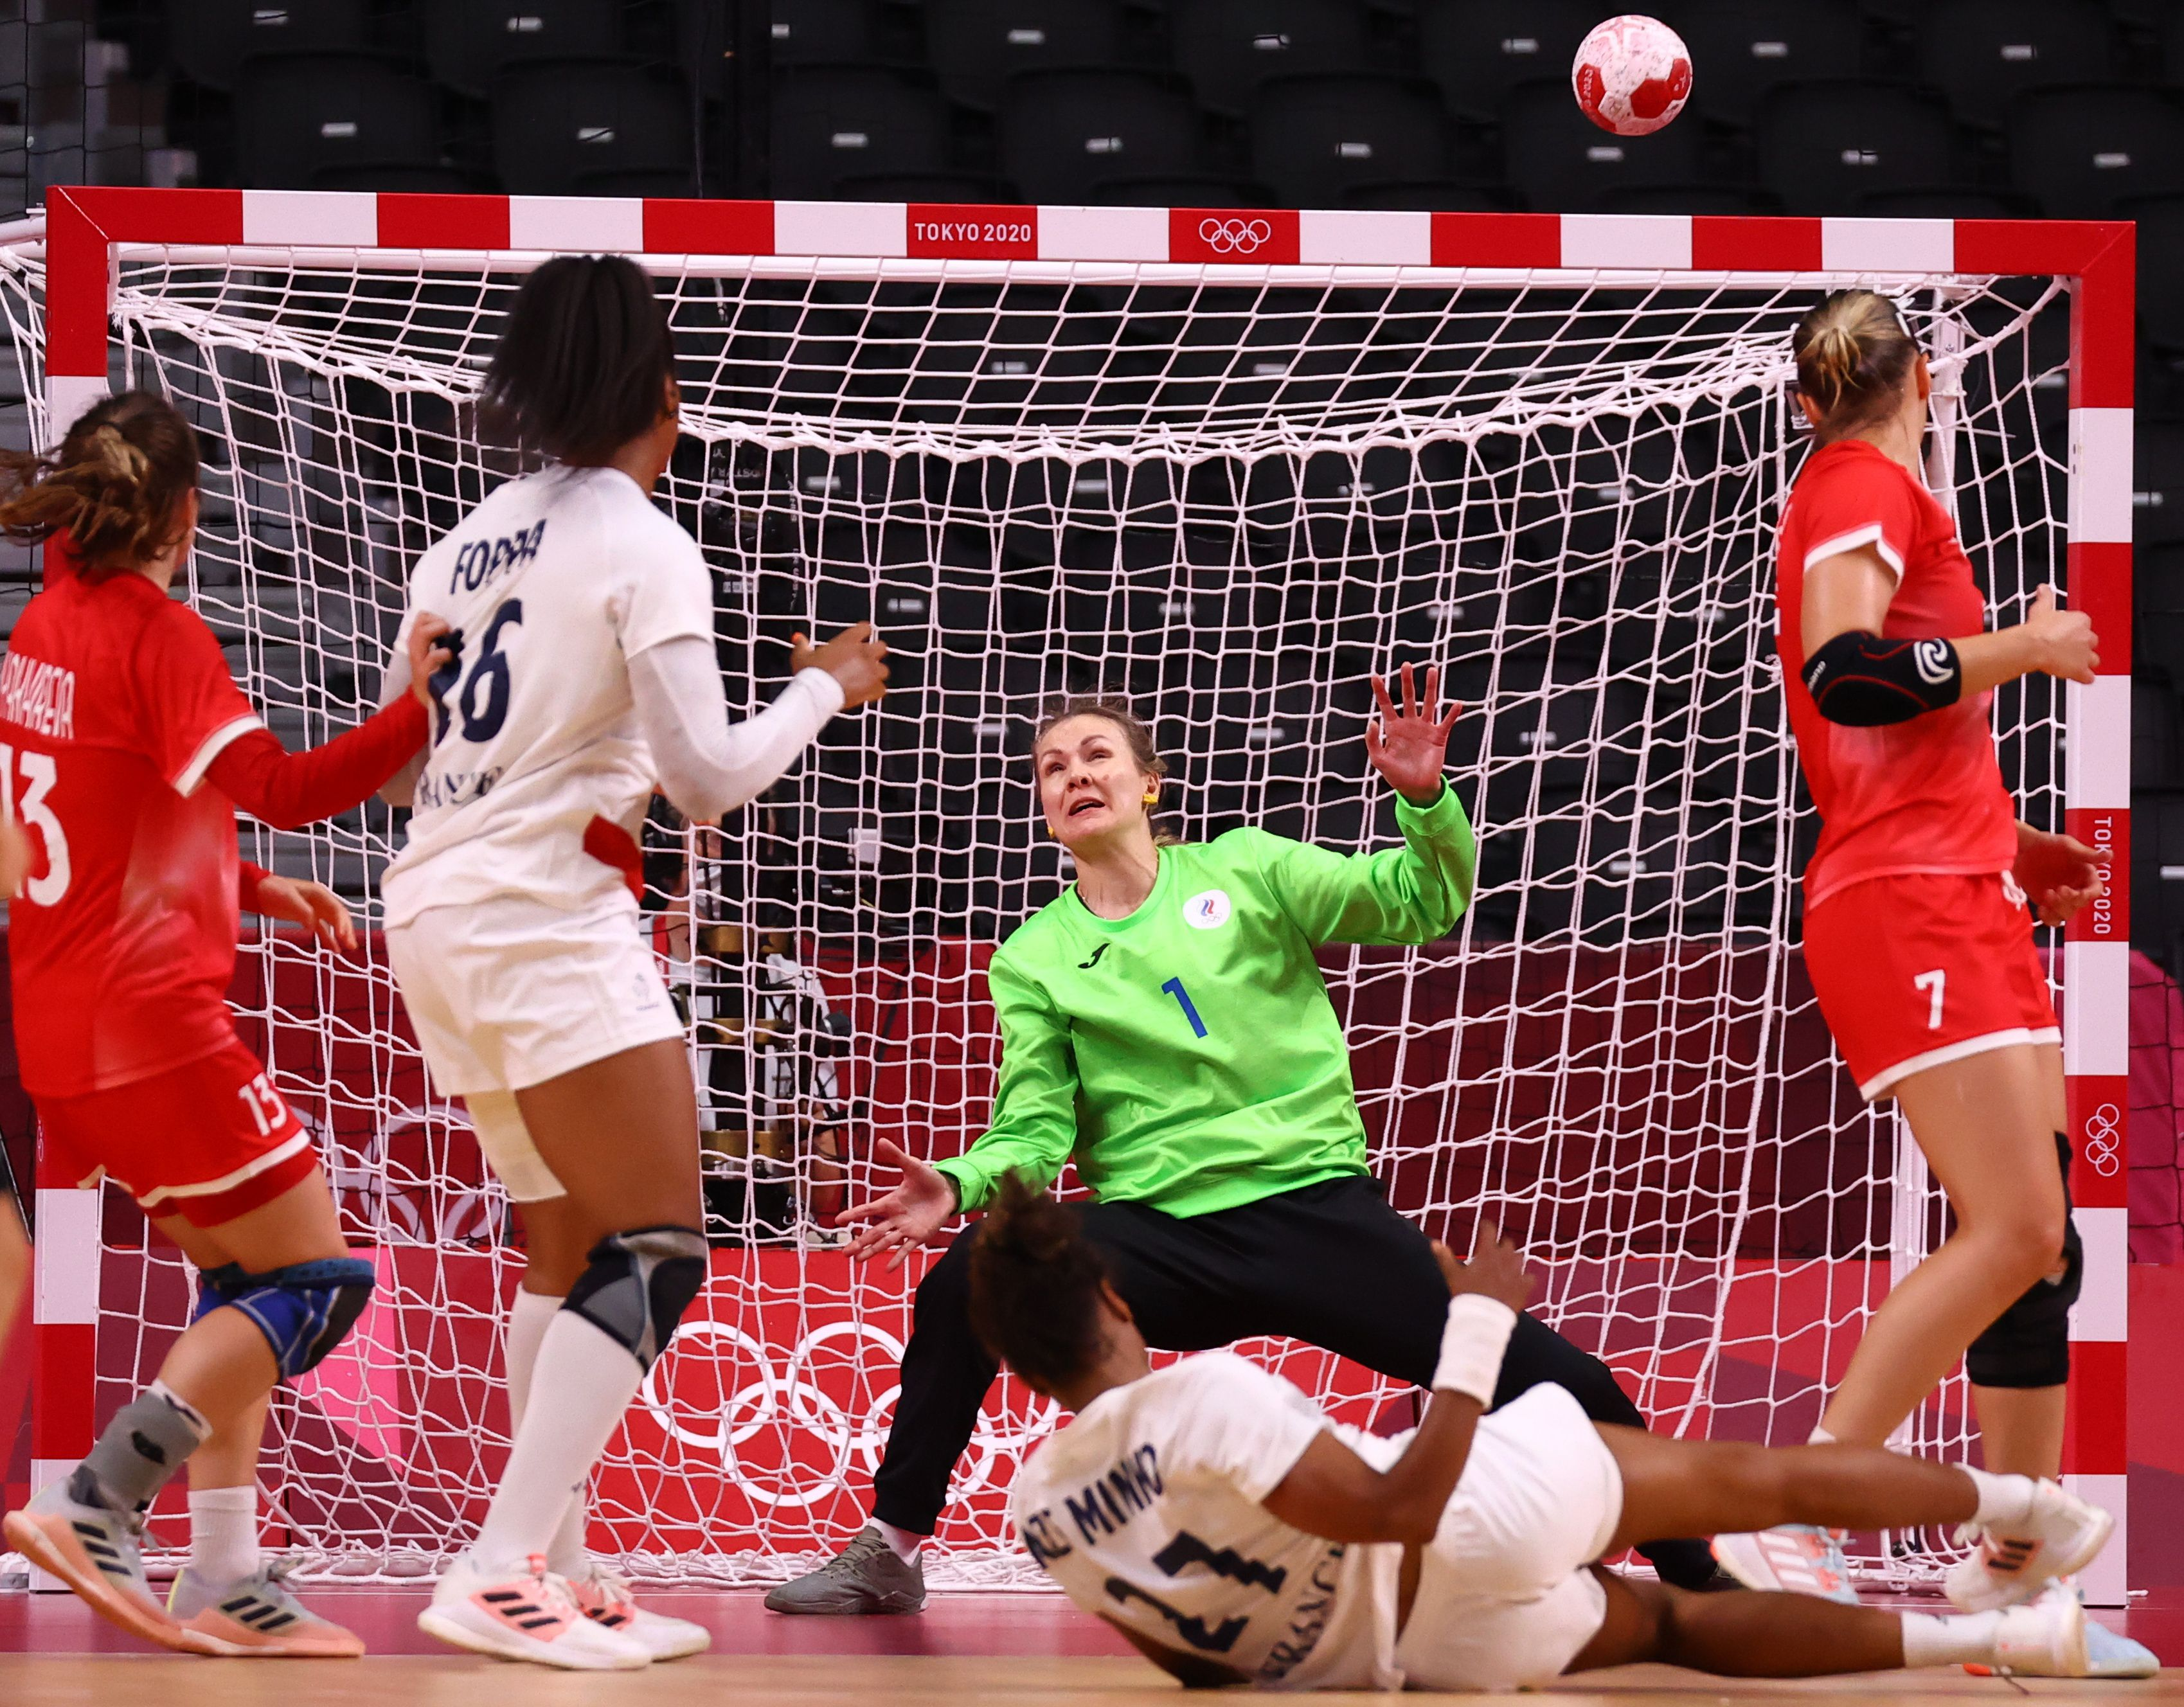 Tokyo 2020 Olympics - Handball - Women - Group B - Russian Olympic Committee v France - Yoyogi National Stadium - Tokyo, Japan - July 31, 2021. Anna Sedoykina of the Russian Olympic Committee saves a shot taken by Estelle Nze Minko of France REUTERS/Leah Millis